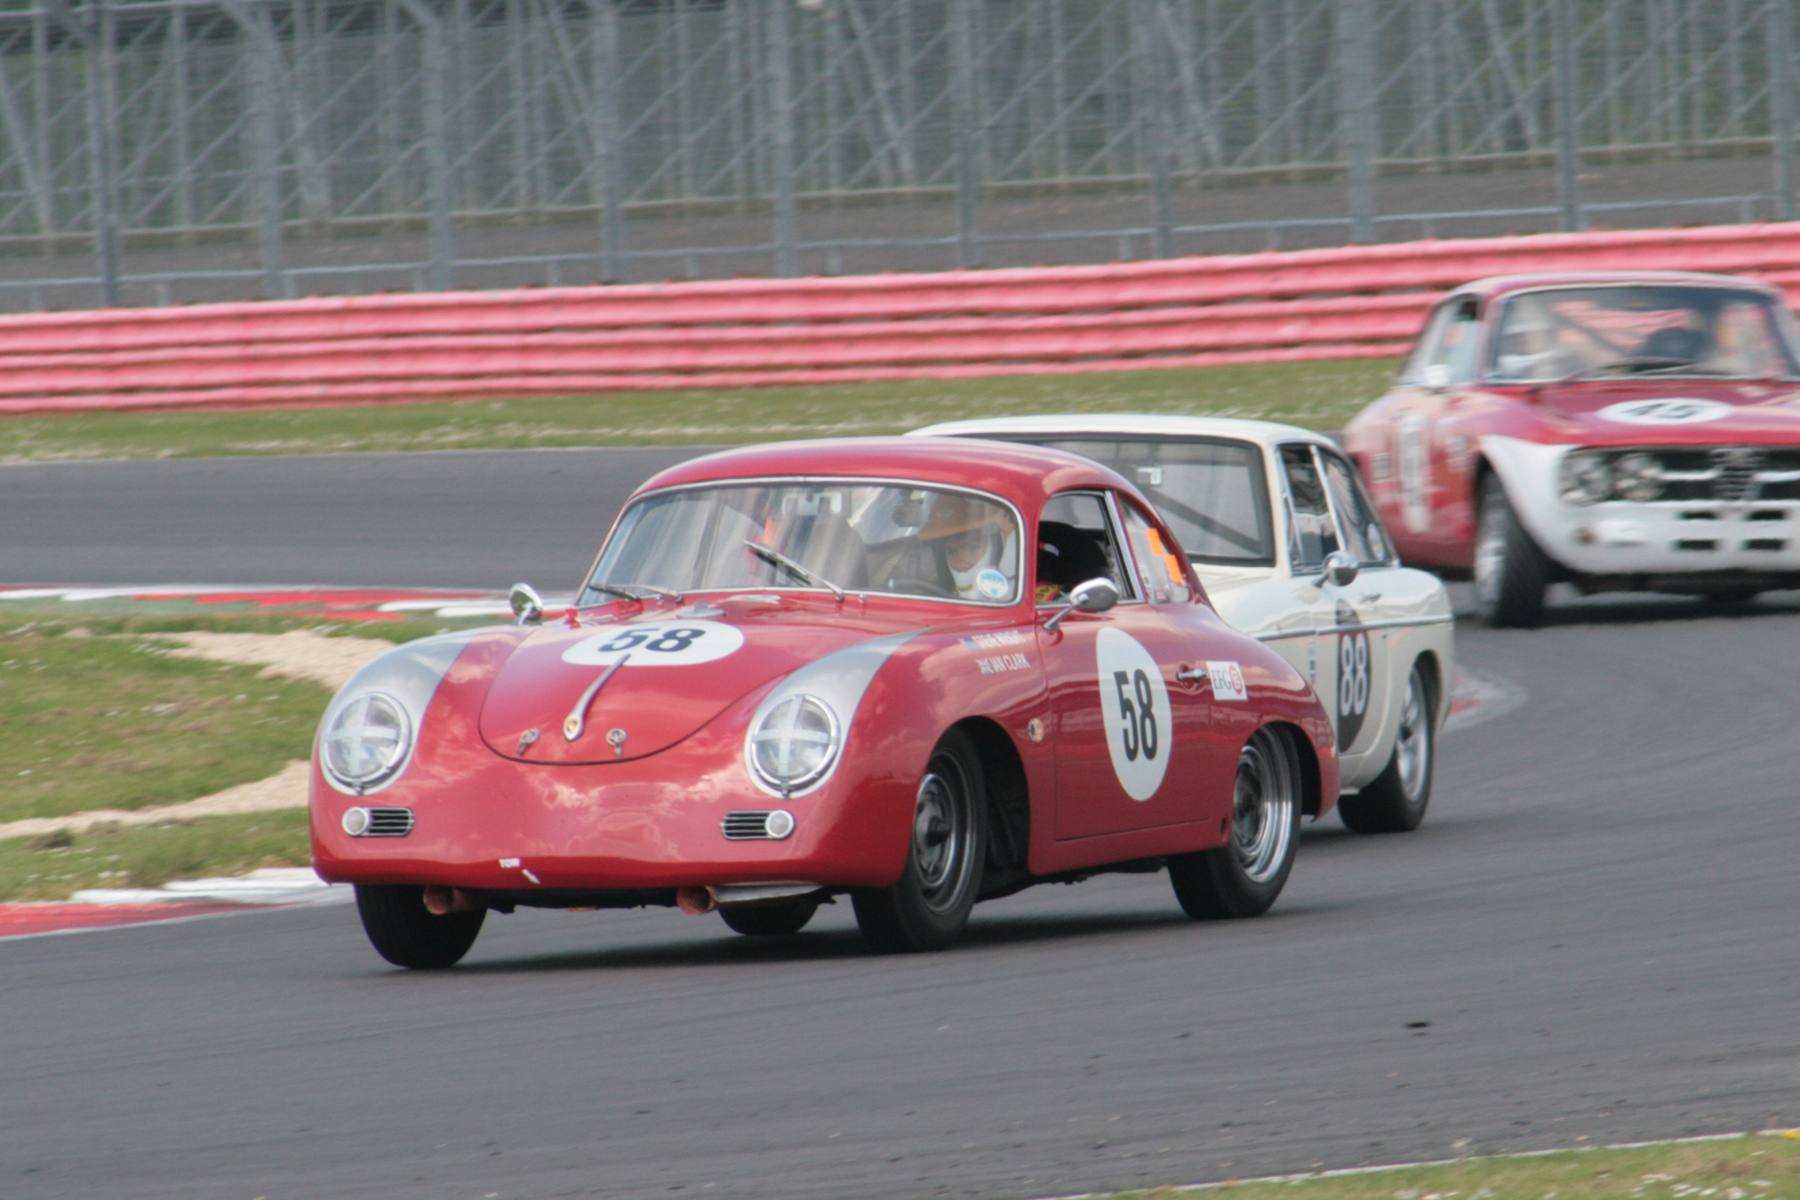 FISCAR First Timer - Steve wright in the lovely little Porsche 356A, sharing with Ian Clark.